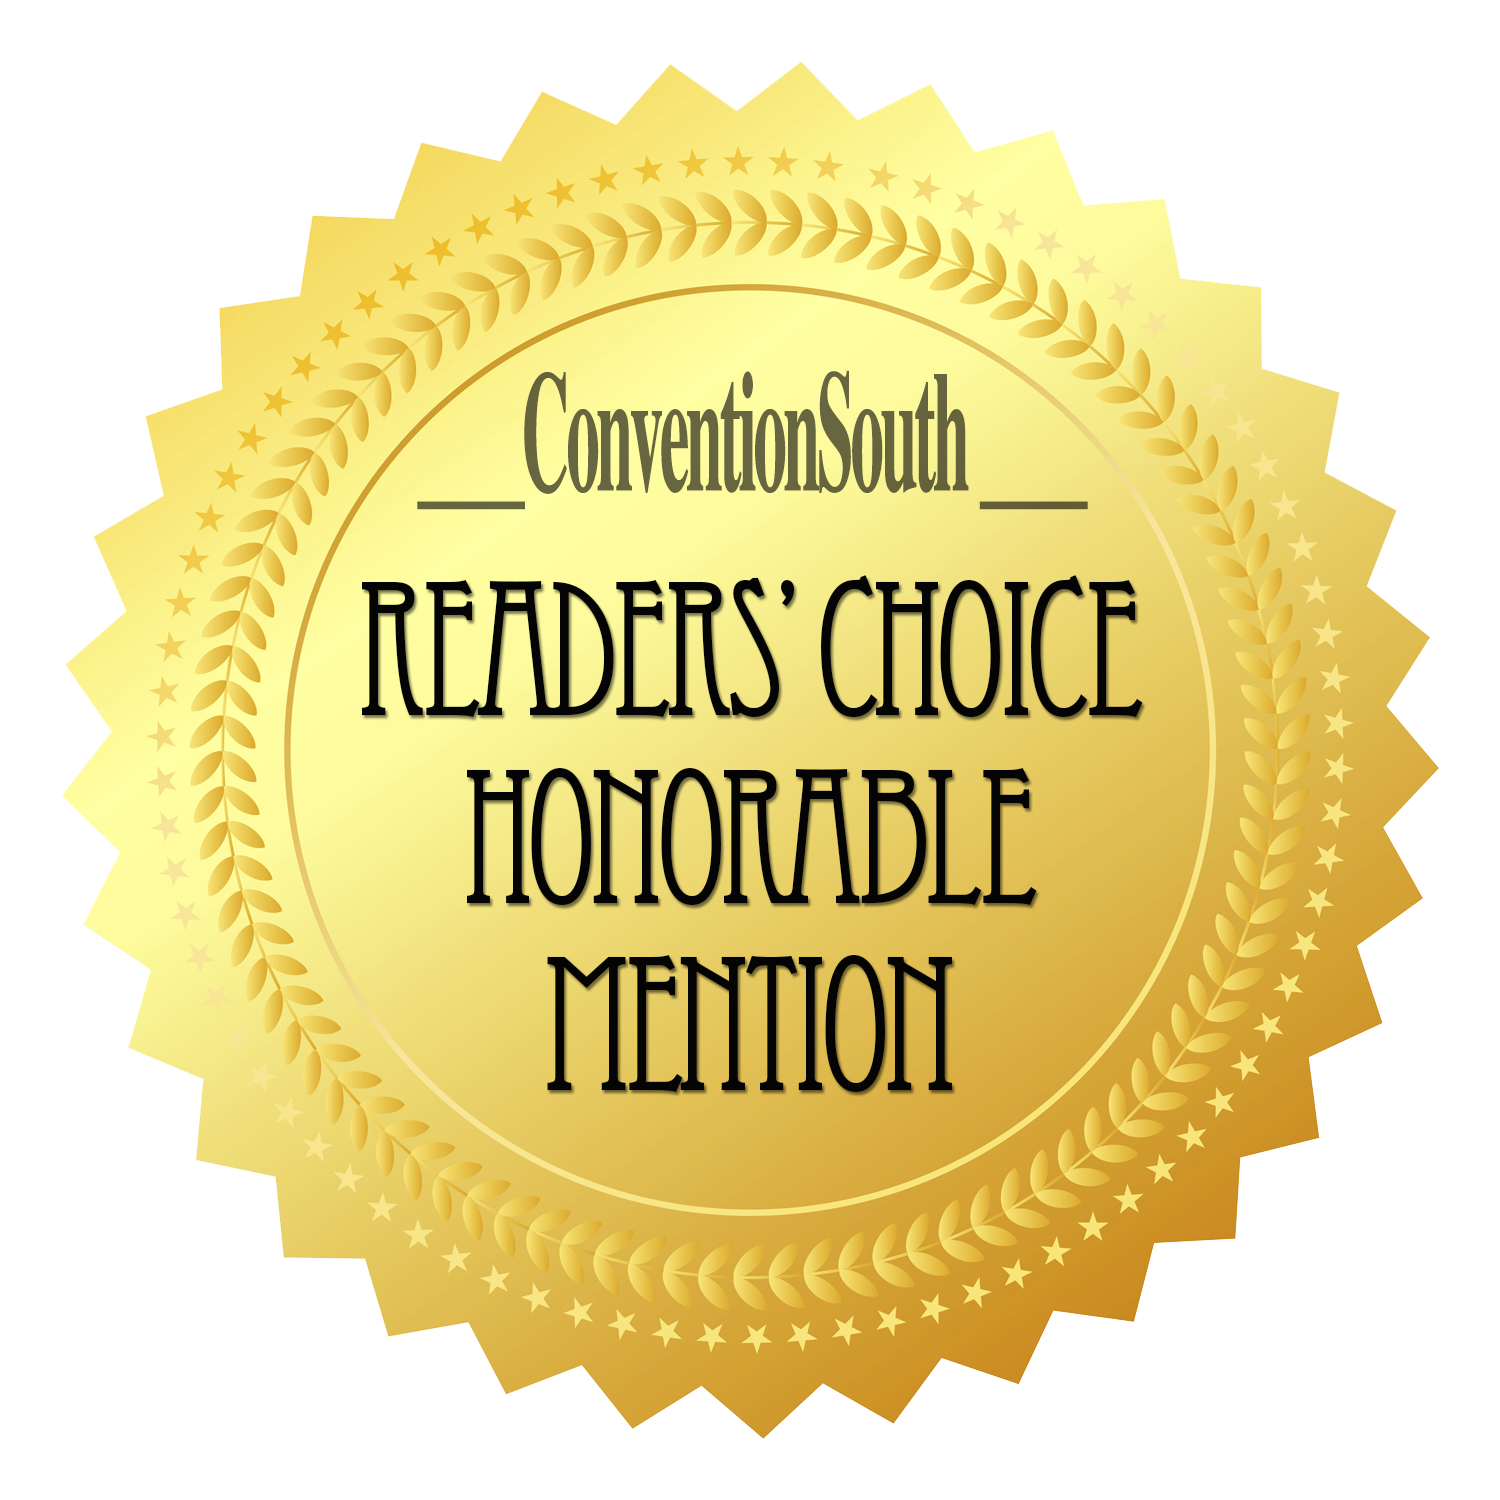 Readers' Choice Honorable Mention